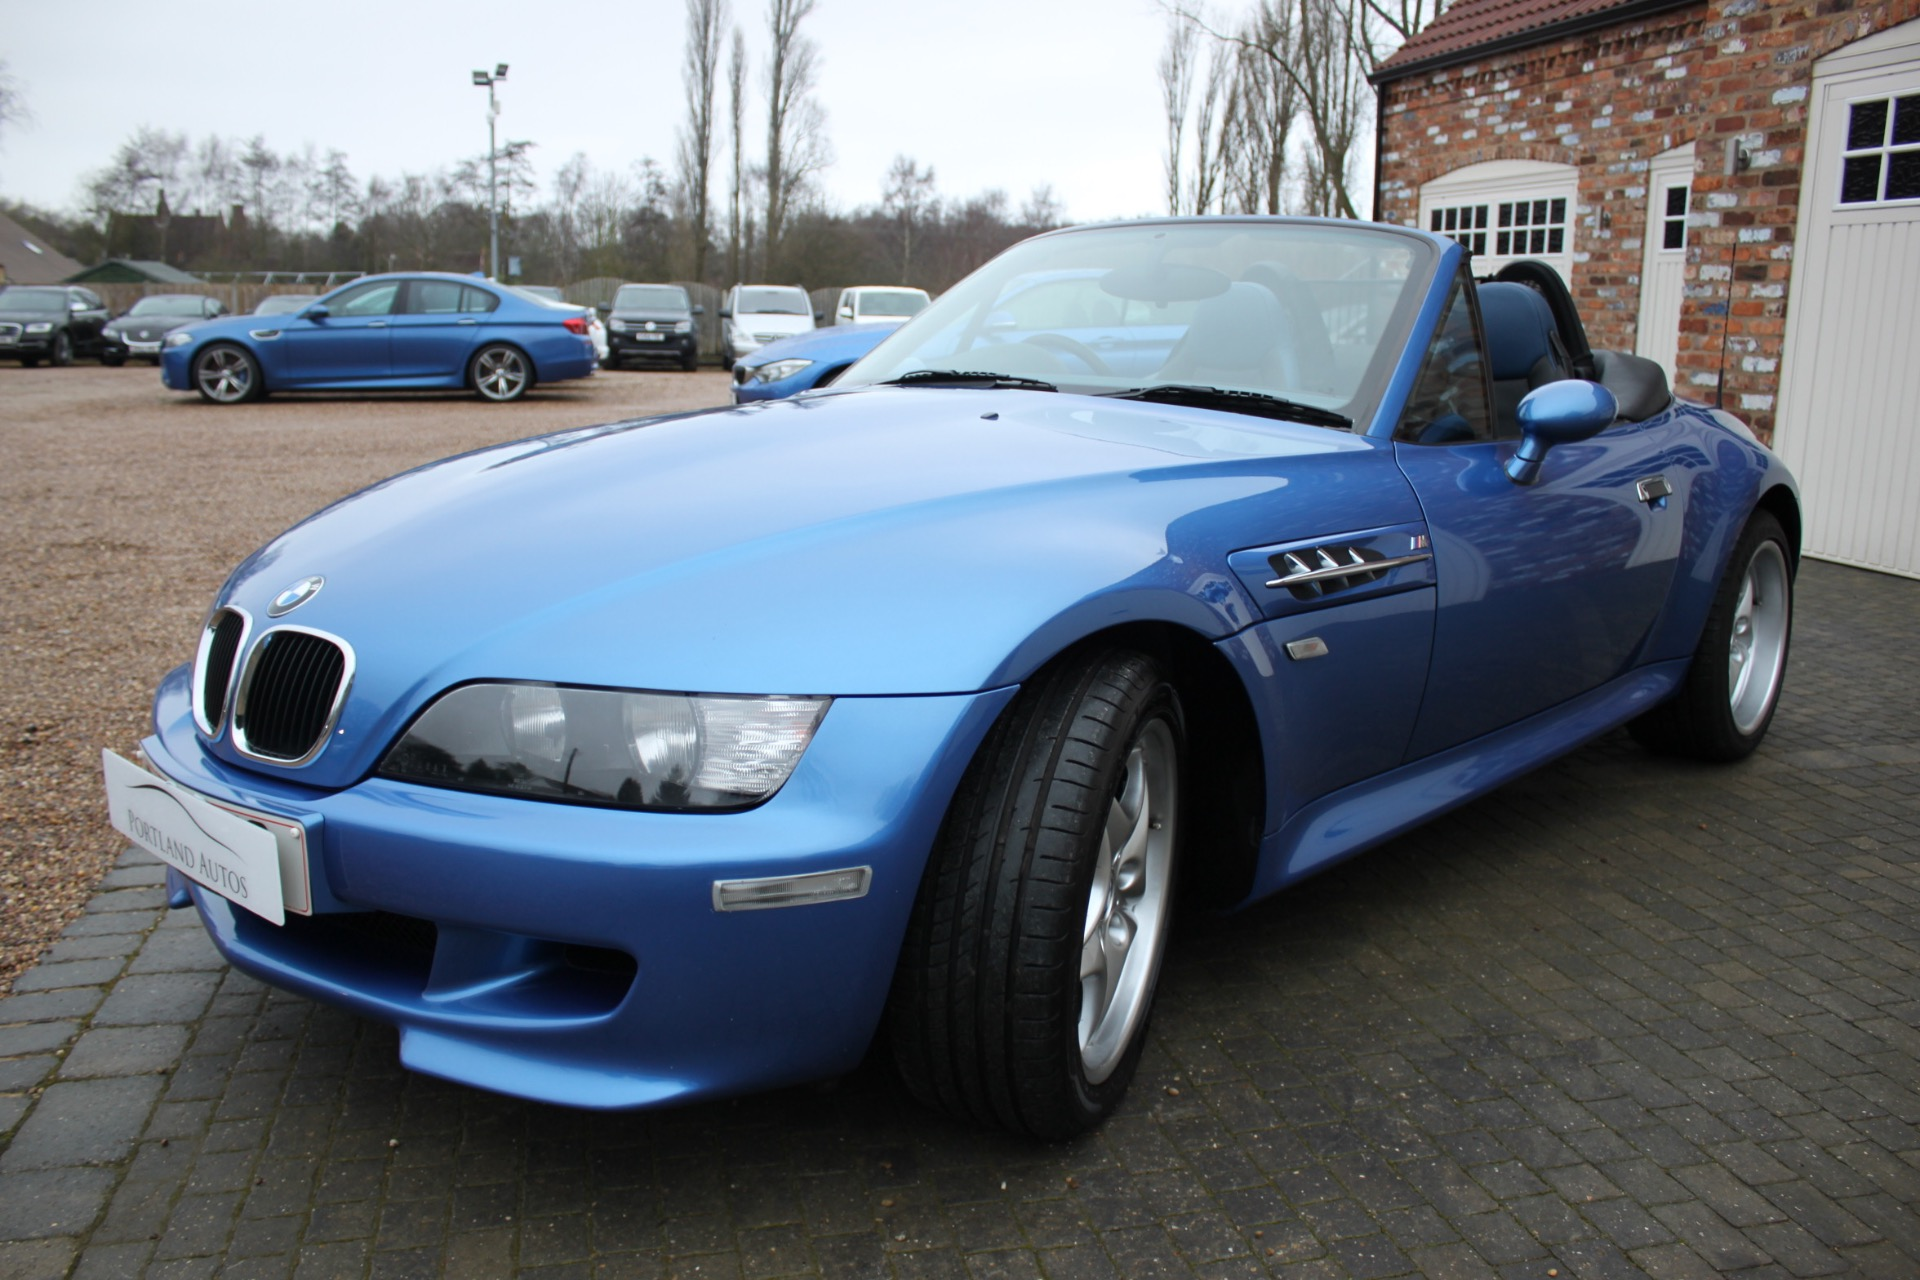 bmw z3 roadster summary 1999 bmw m coupe/m roadster  0 shares in this story 1999 bmw 328i/m3 1999 bmw 5-series 1999 chevrolet corvette  the addition of a steel roof may do nothing for the z3's lines, but it.